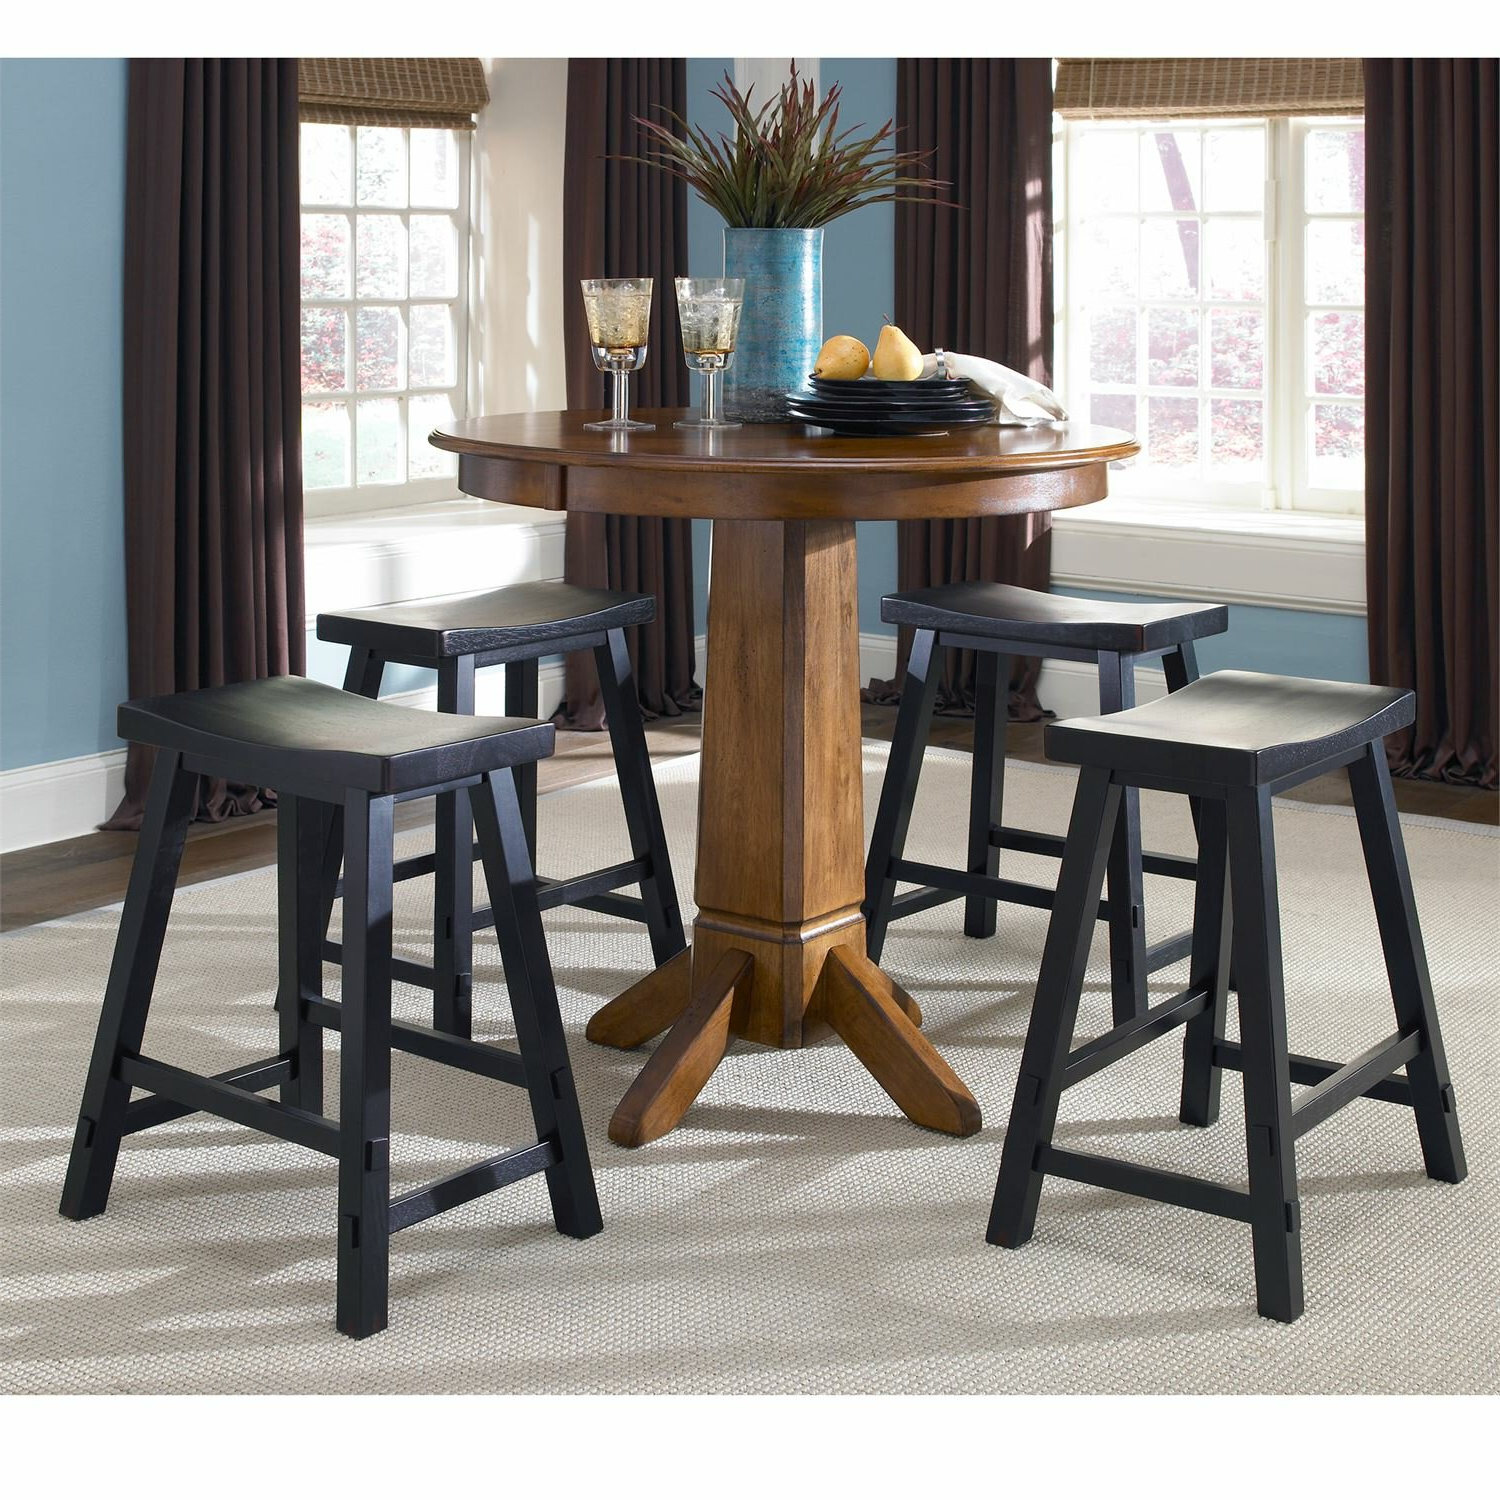 Widely Used Marni 6 Piece Pub Table Set Inside Berrios 3 Piece Counter Height Dining Sets (View 19 of 20)